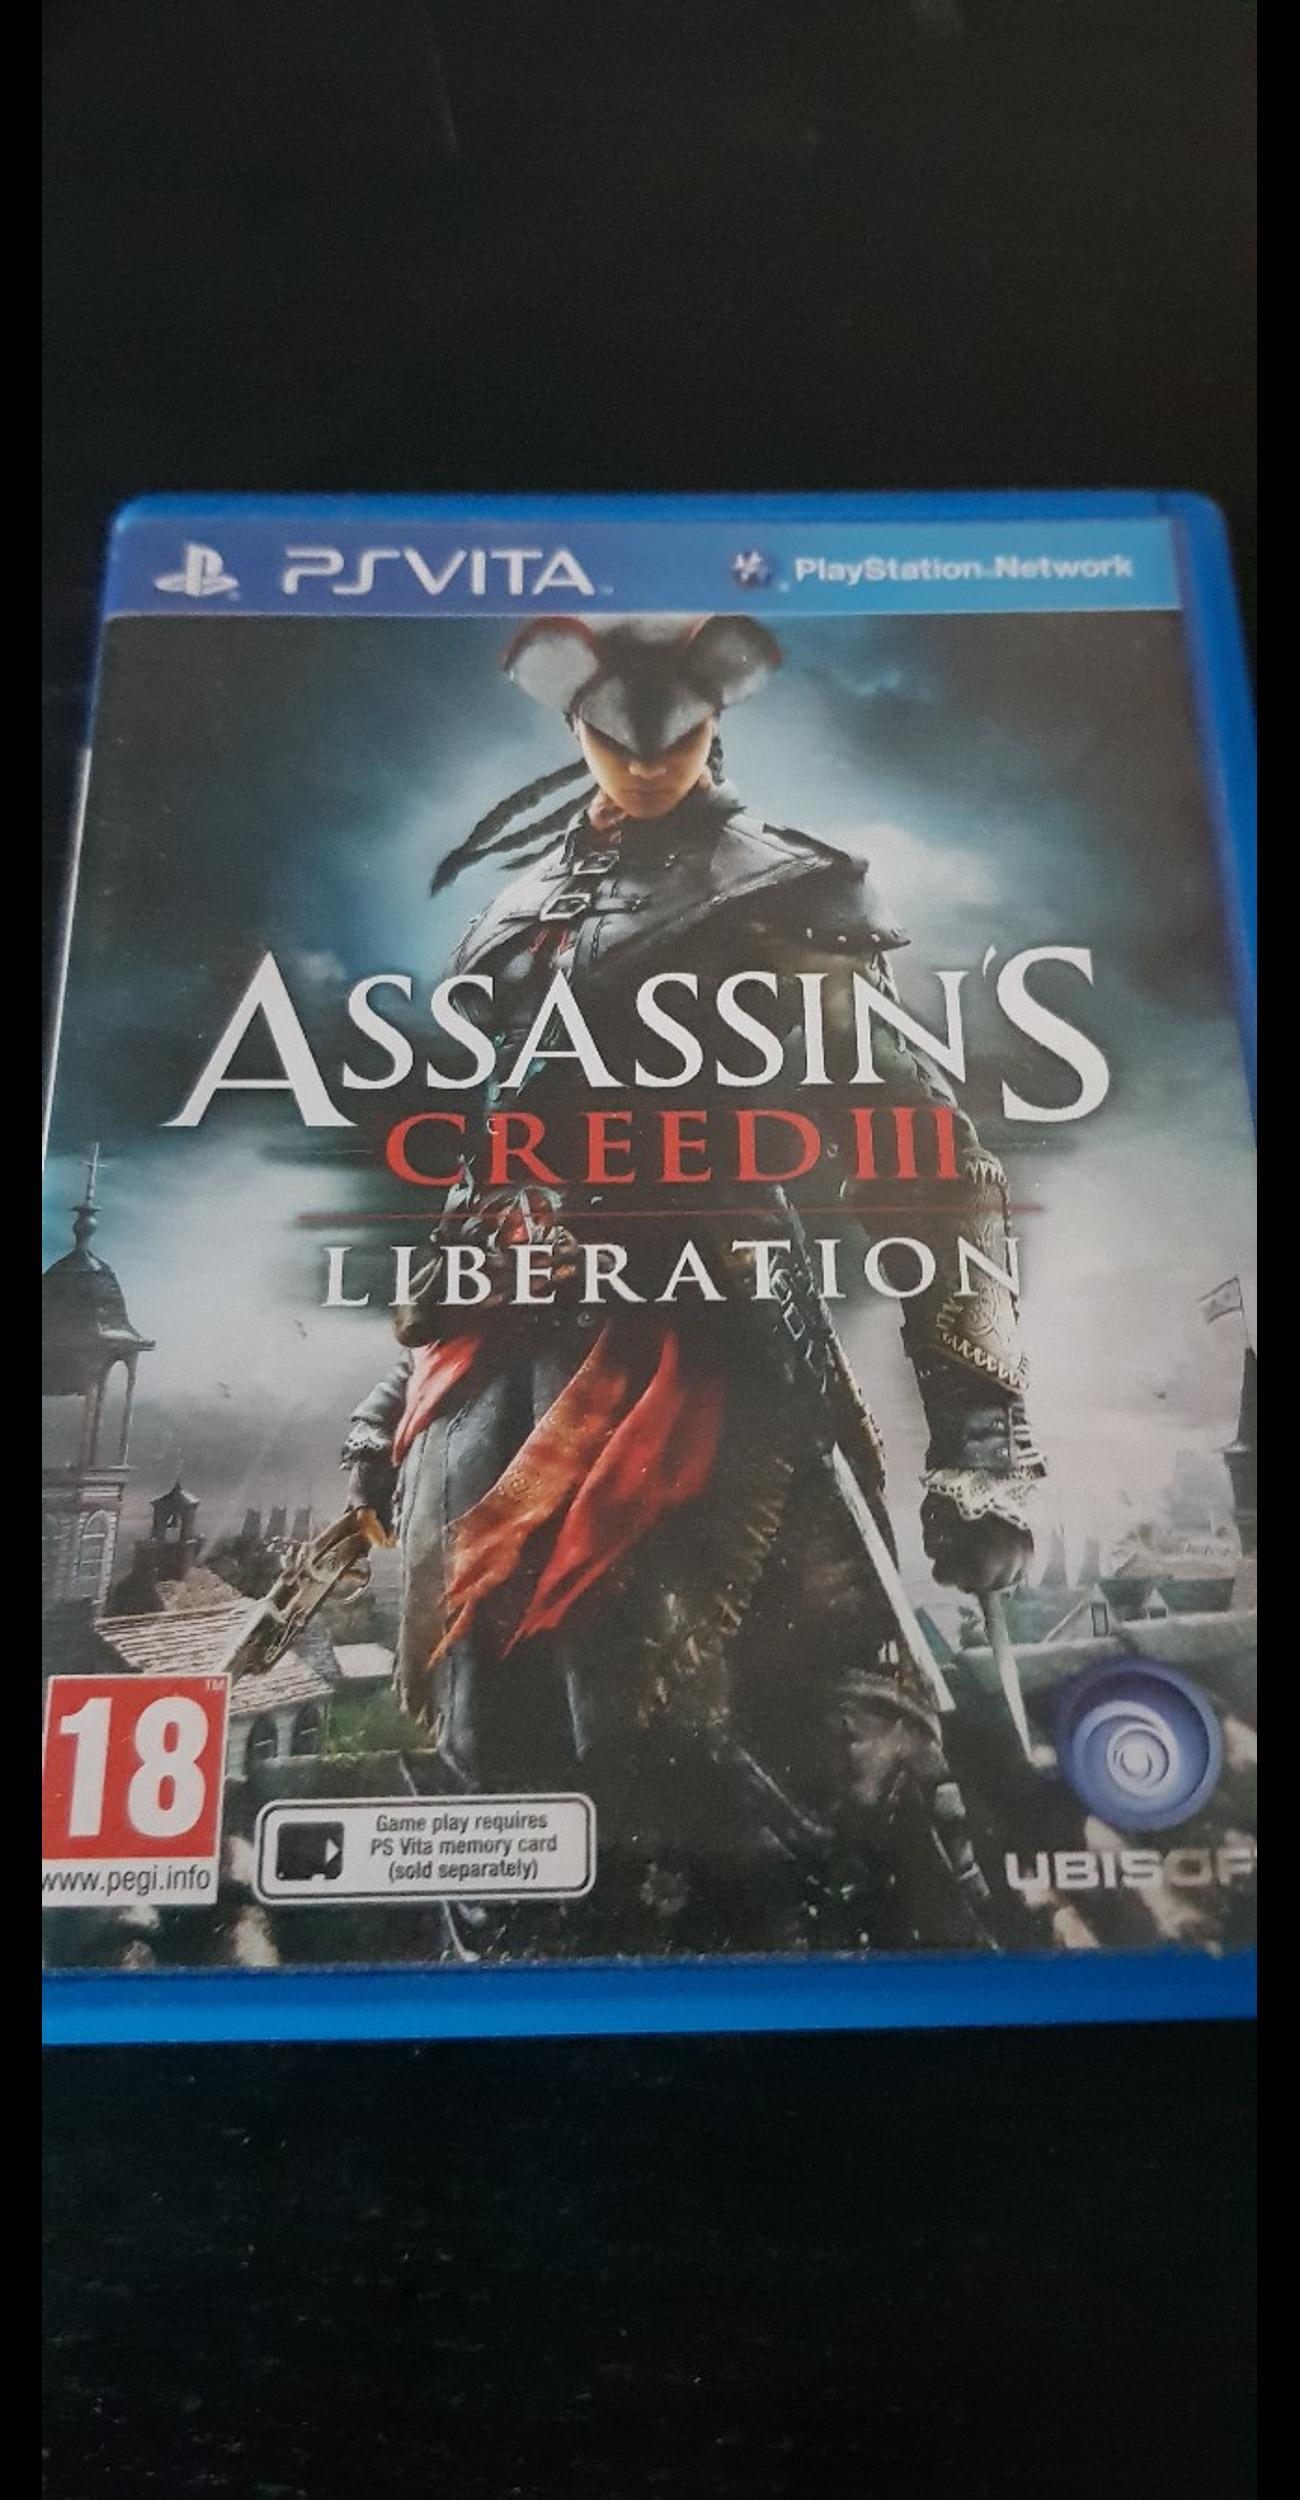 Assassins Creed Iii Liberation Ps Vita In Bh9 Village For 10 00